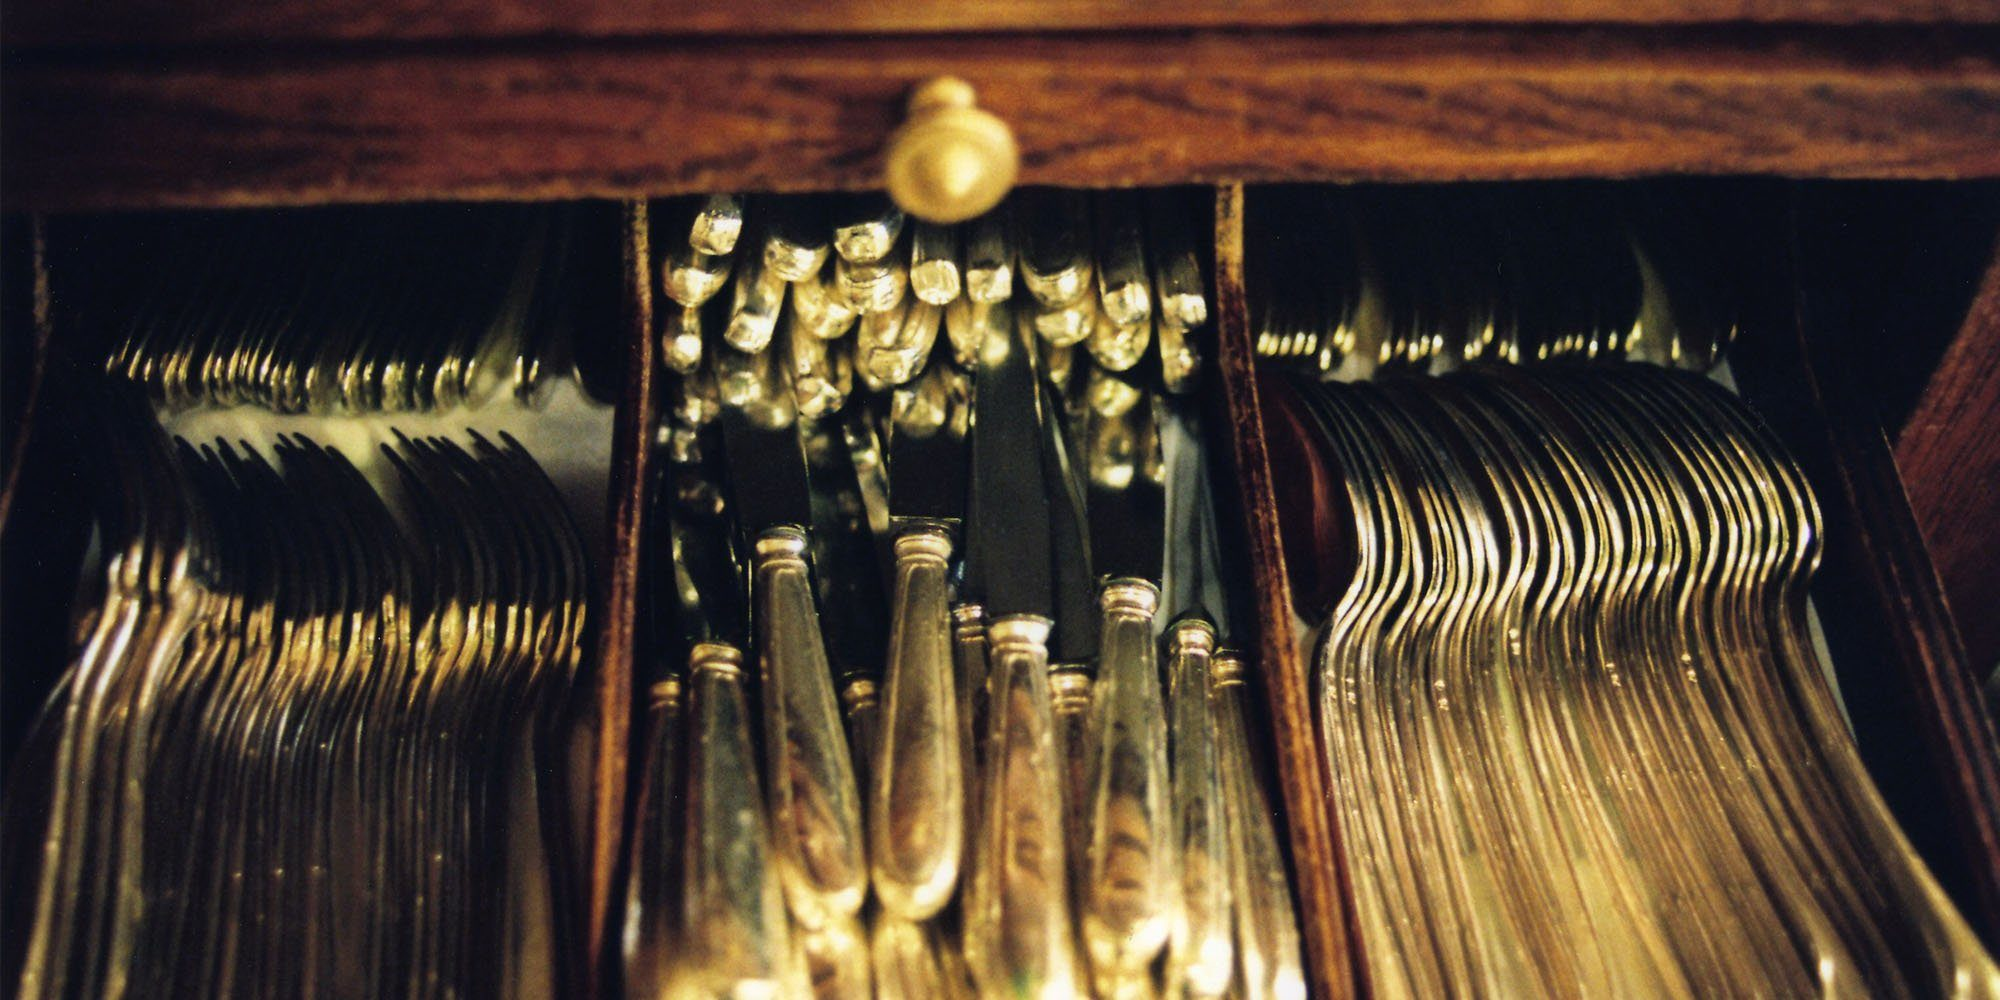 Culterly drawer filled with silverware at Benoit bistro in Paris.